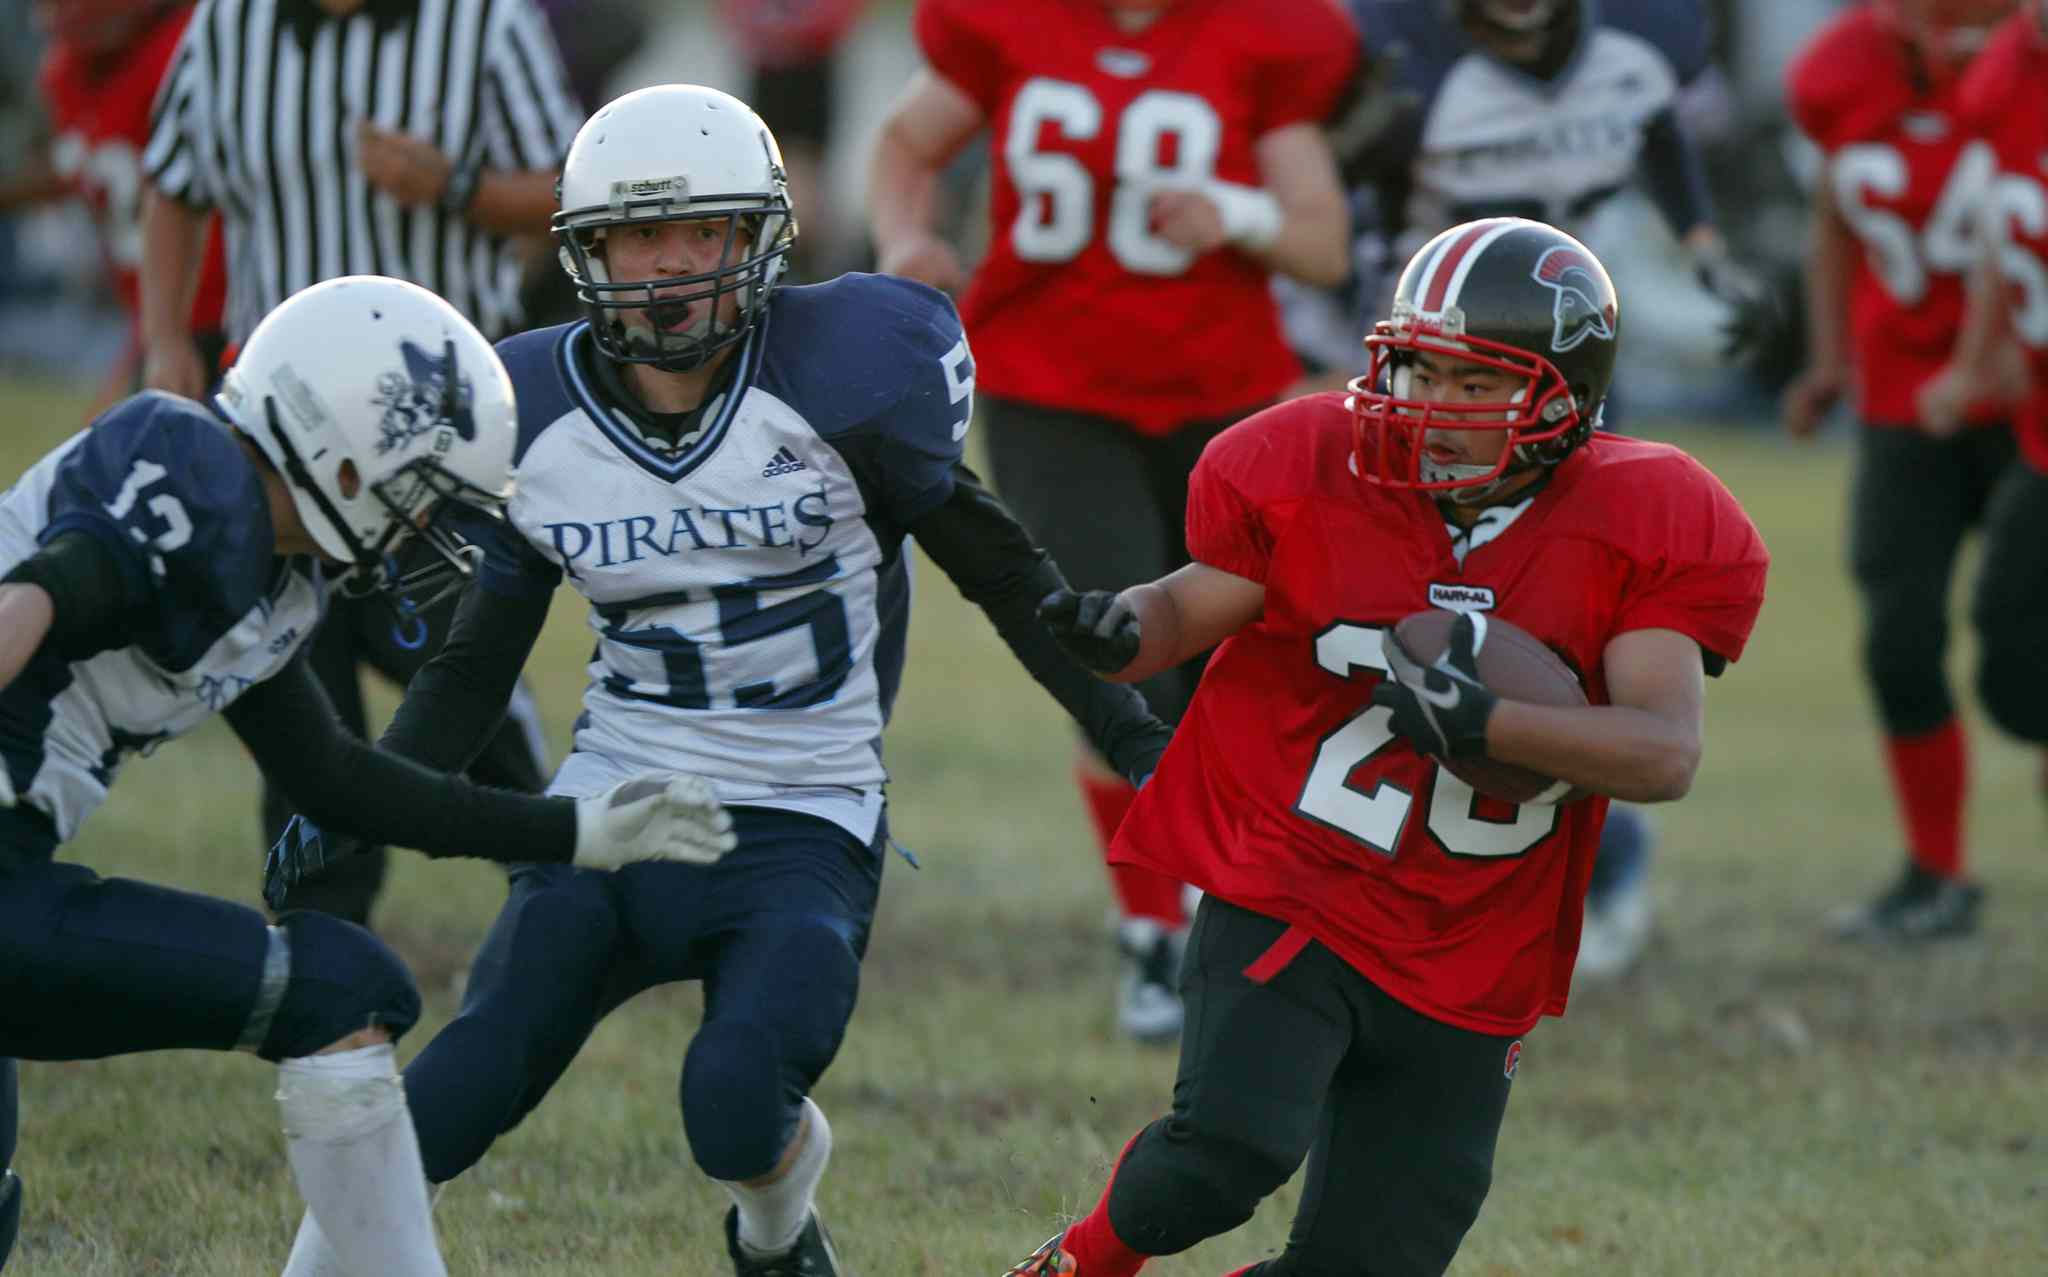 Ivan Jaque of the Spartans (right) tries to evade Ron Almonte (left) and Max Zimberg of the Grant Park Pirates.